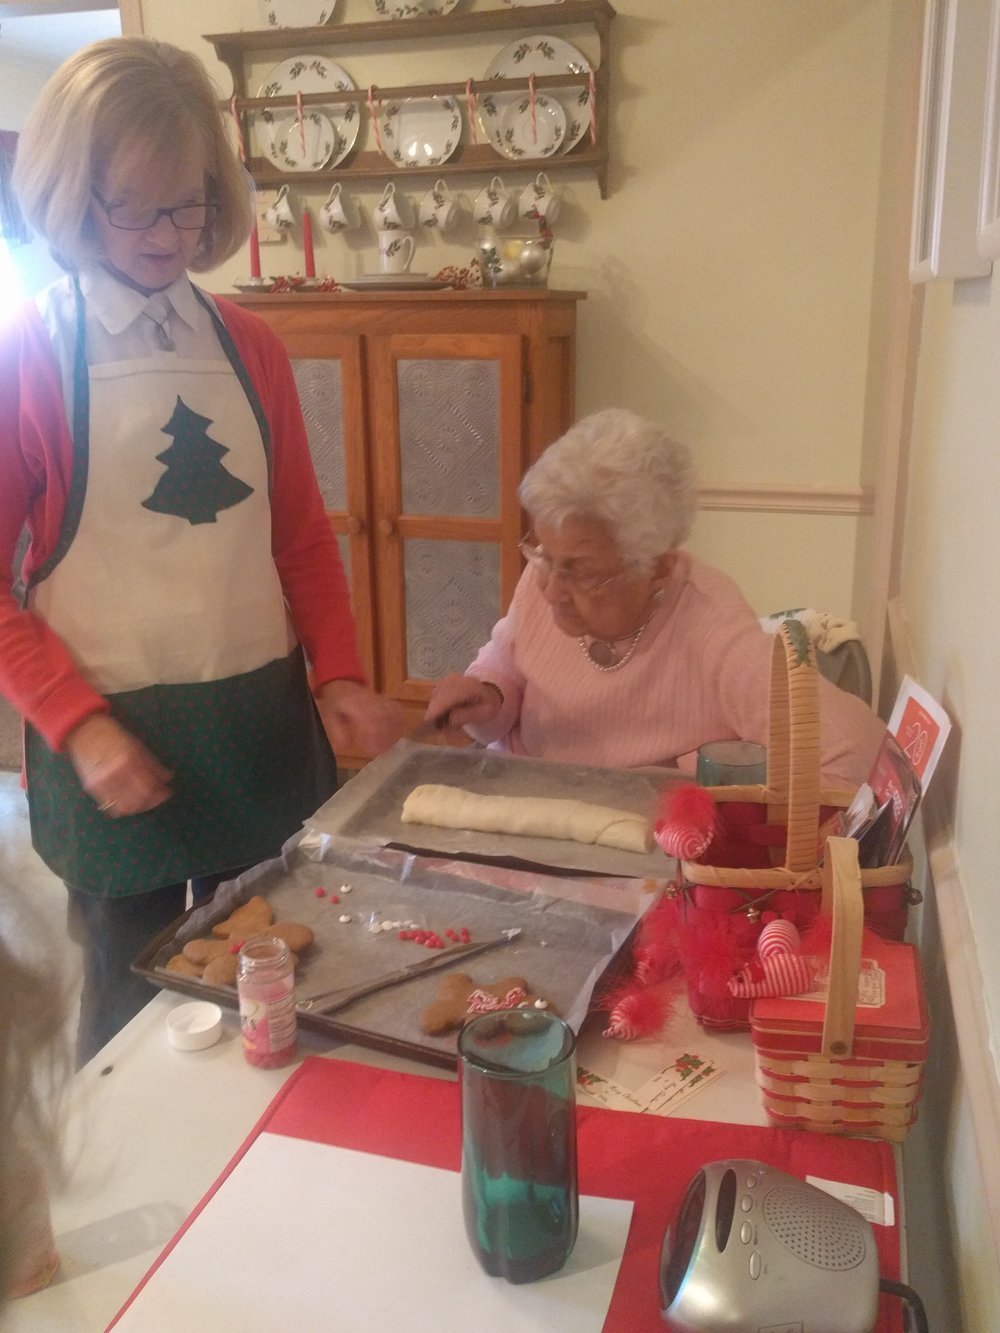 Grandmom slicing up the potato candy with mom's help.